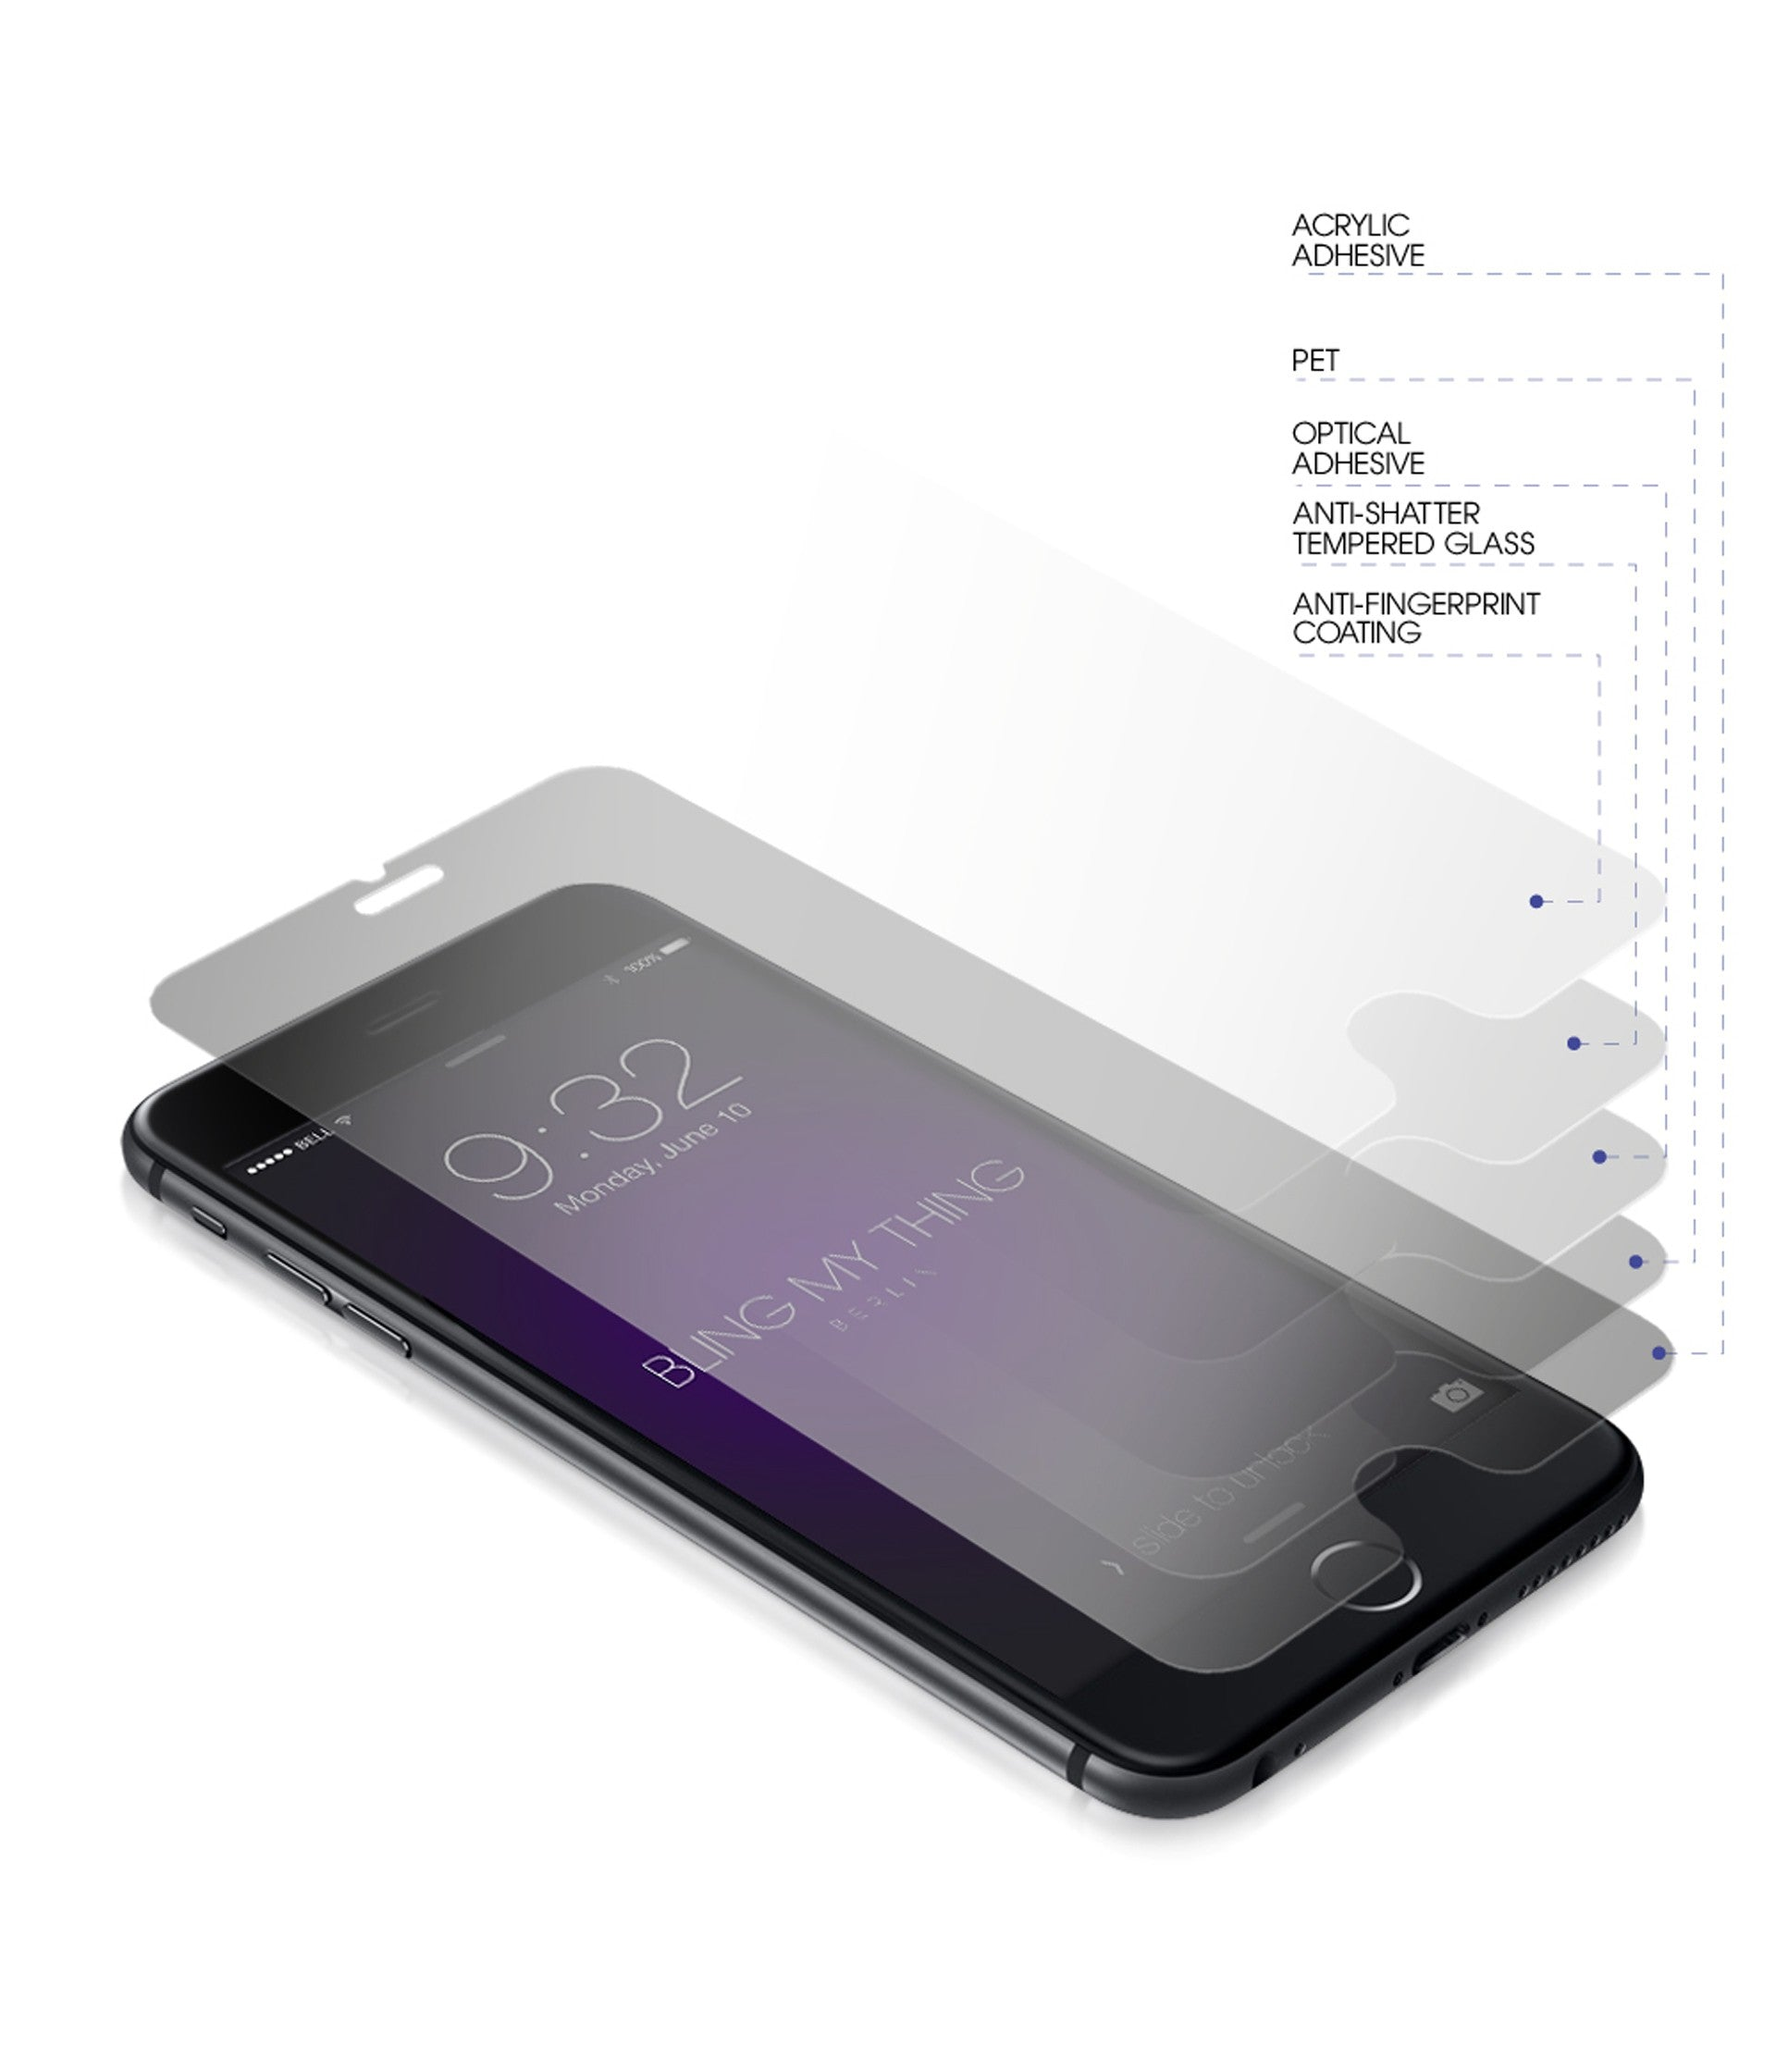 iPhone 6 Screen Protectors